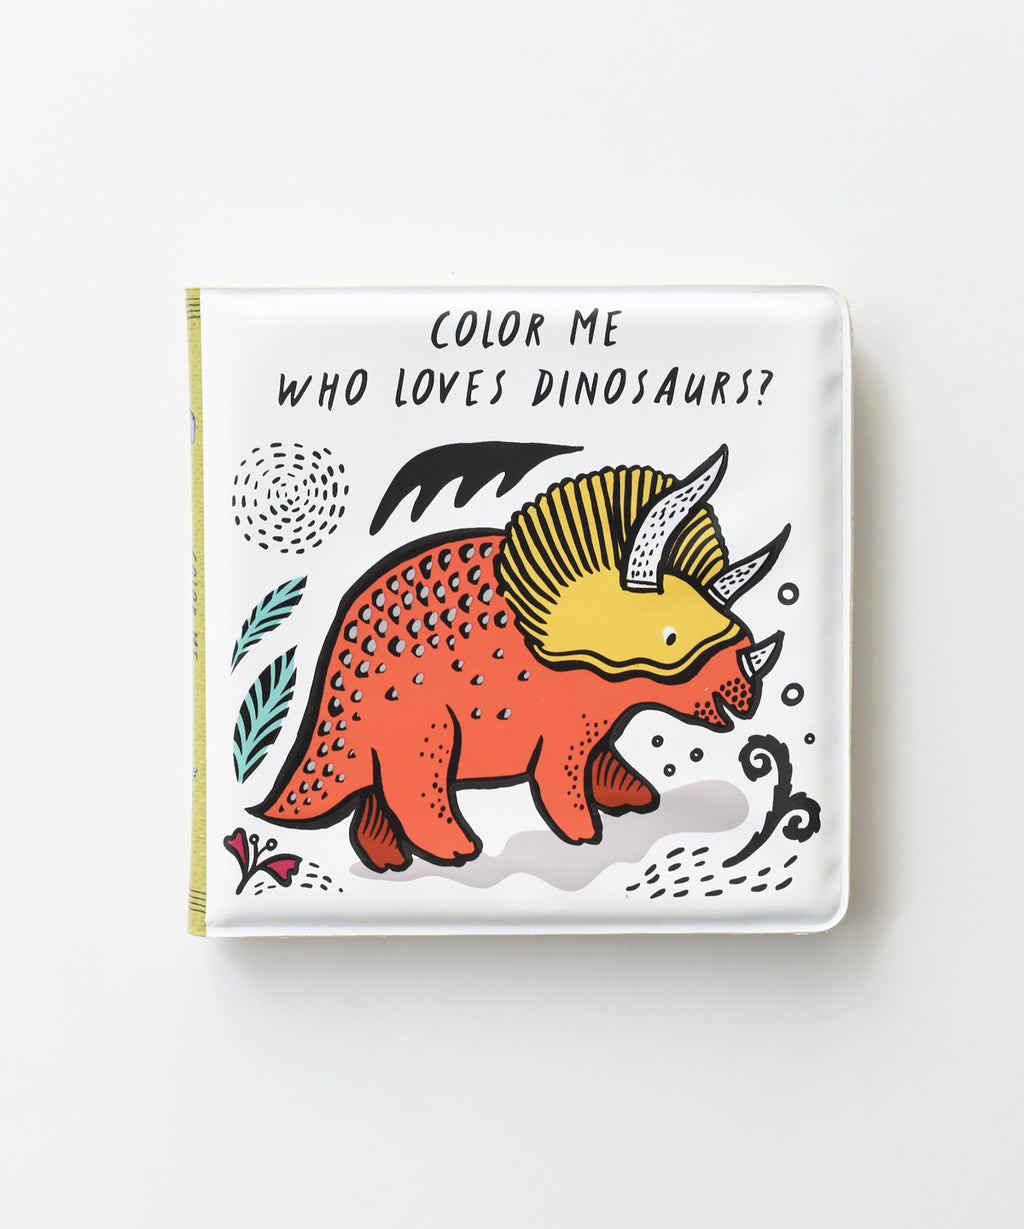 Wee Gallery - Color Me Book - Who loves Dinosaurs?